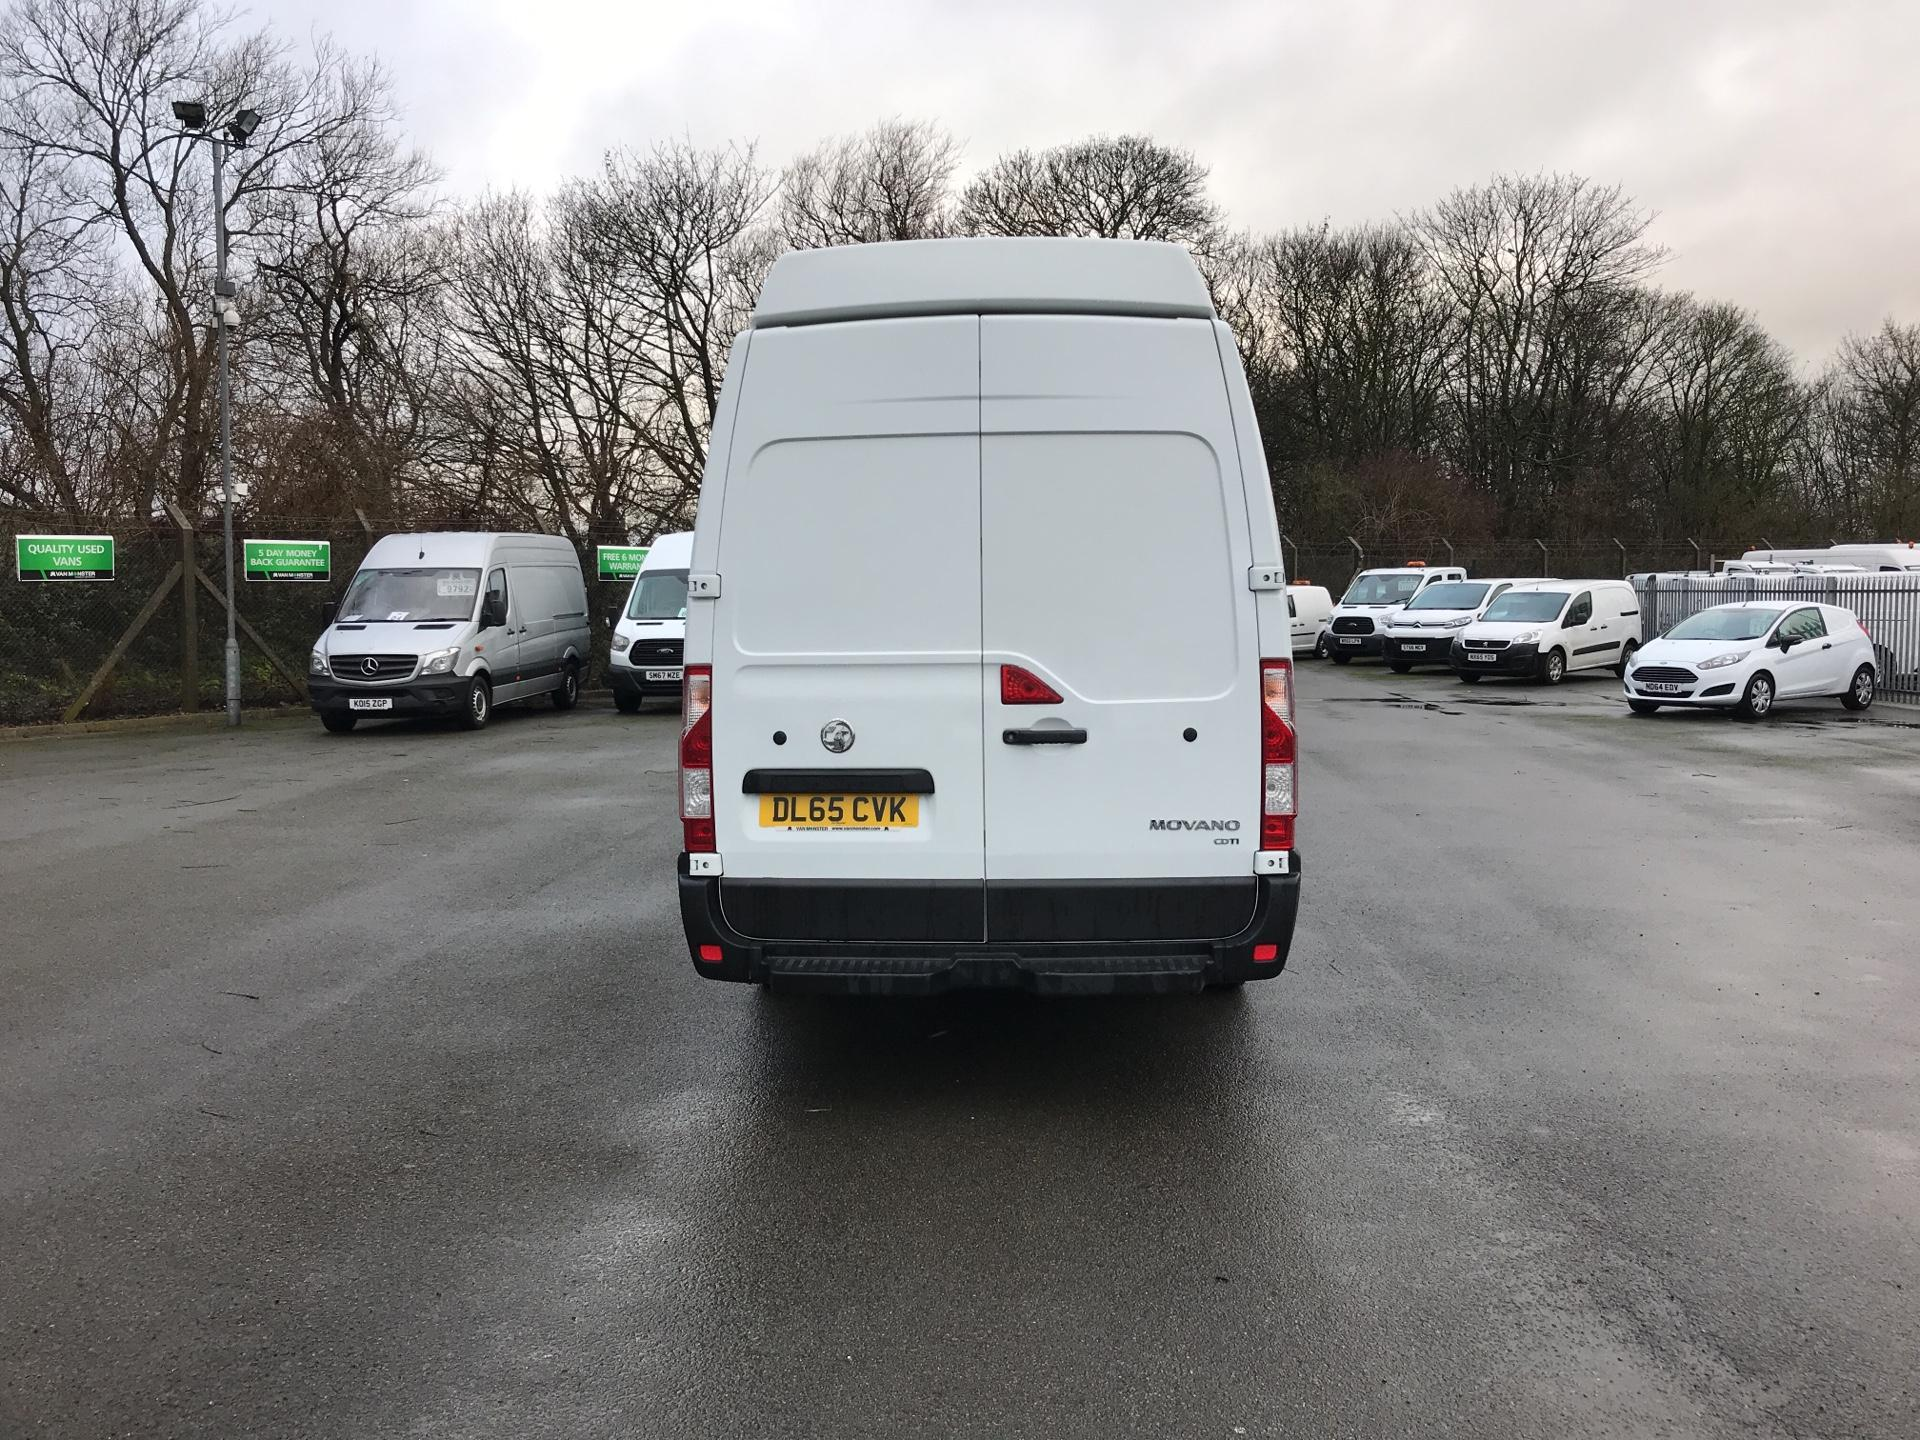 2015 Vauxhall Movano 35 L3 H3 125PS EURO 5 *VALUE RANGE VEHICLE - CONDITION REFLECTED IN PRICE* (DL65CVK) Image 4